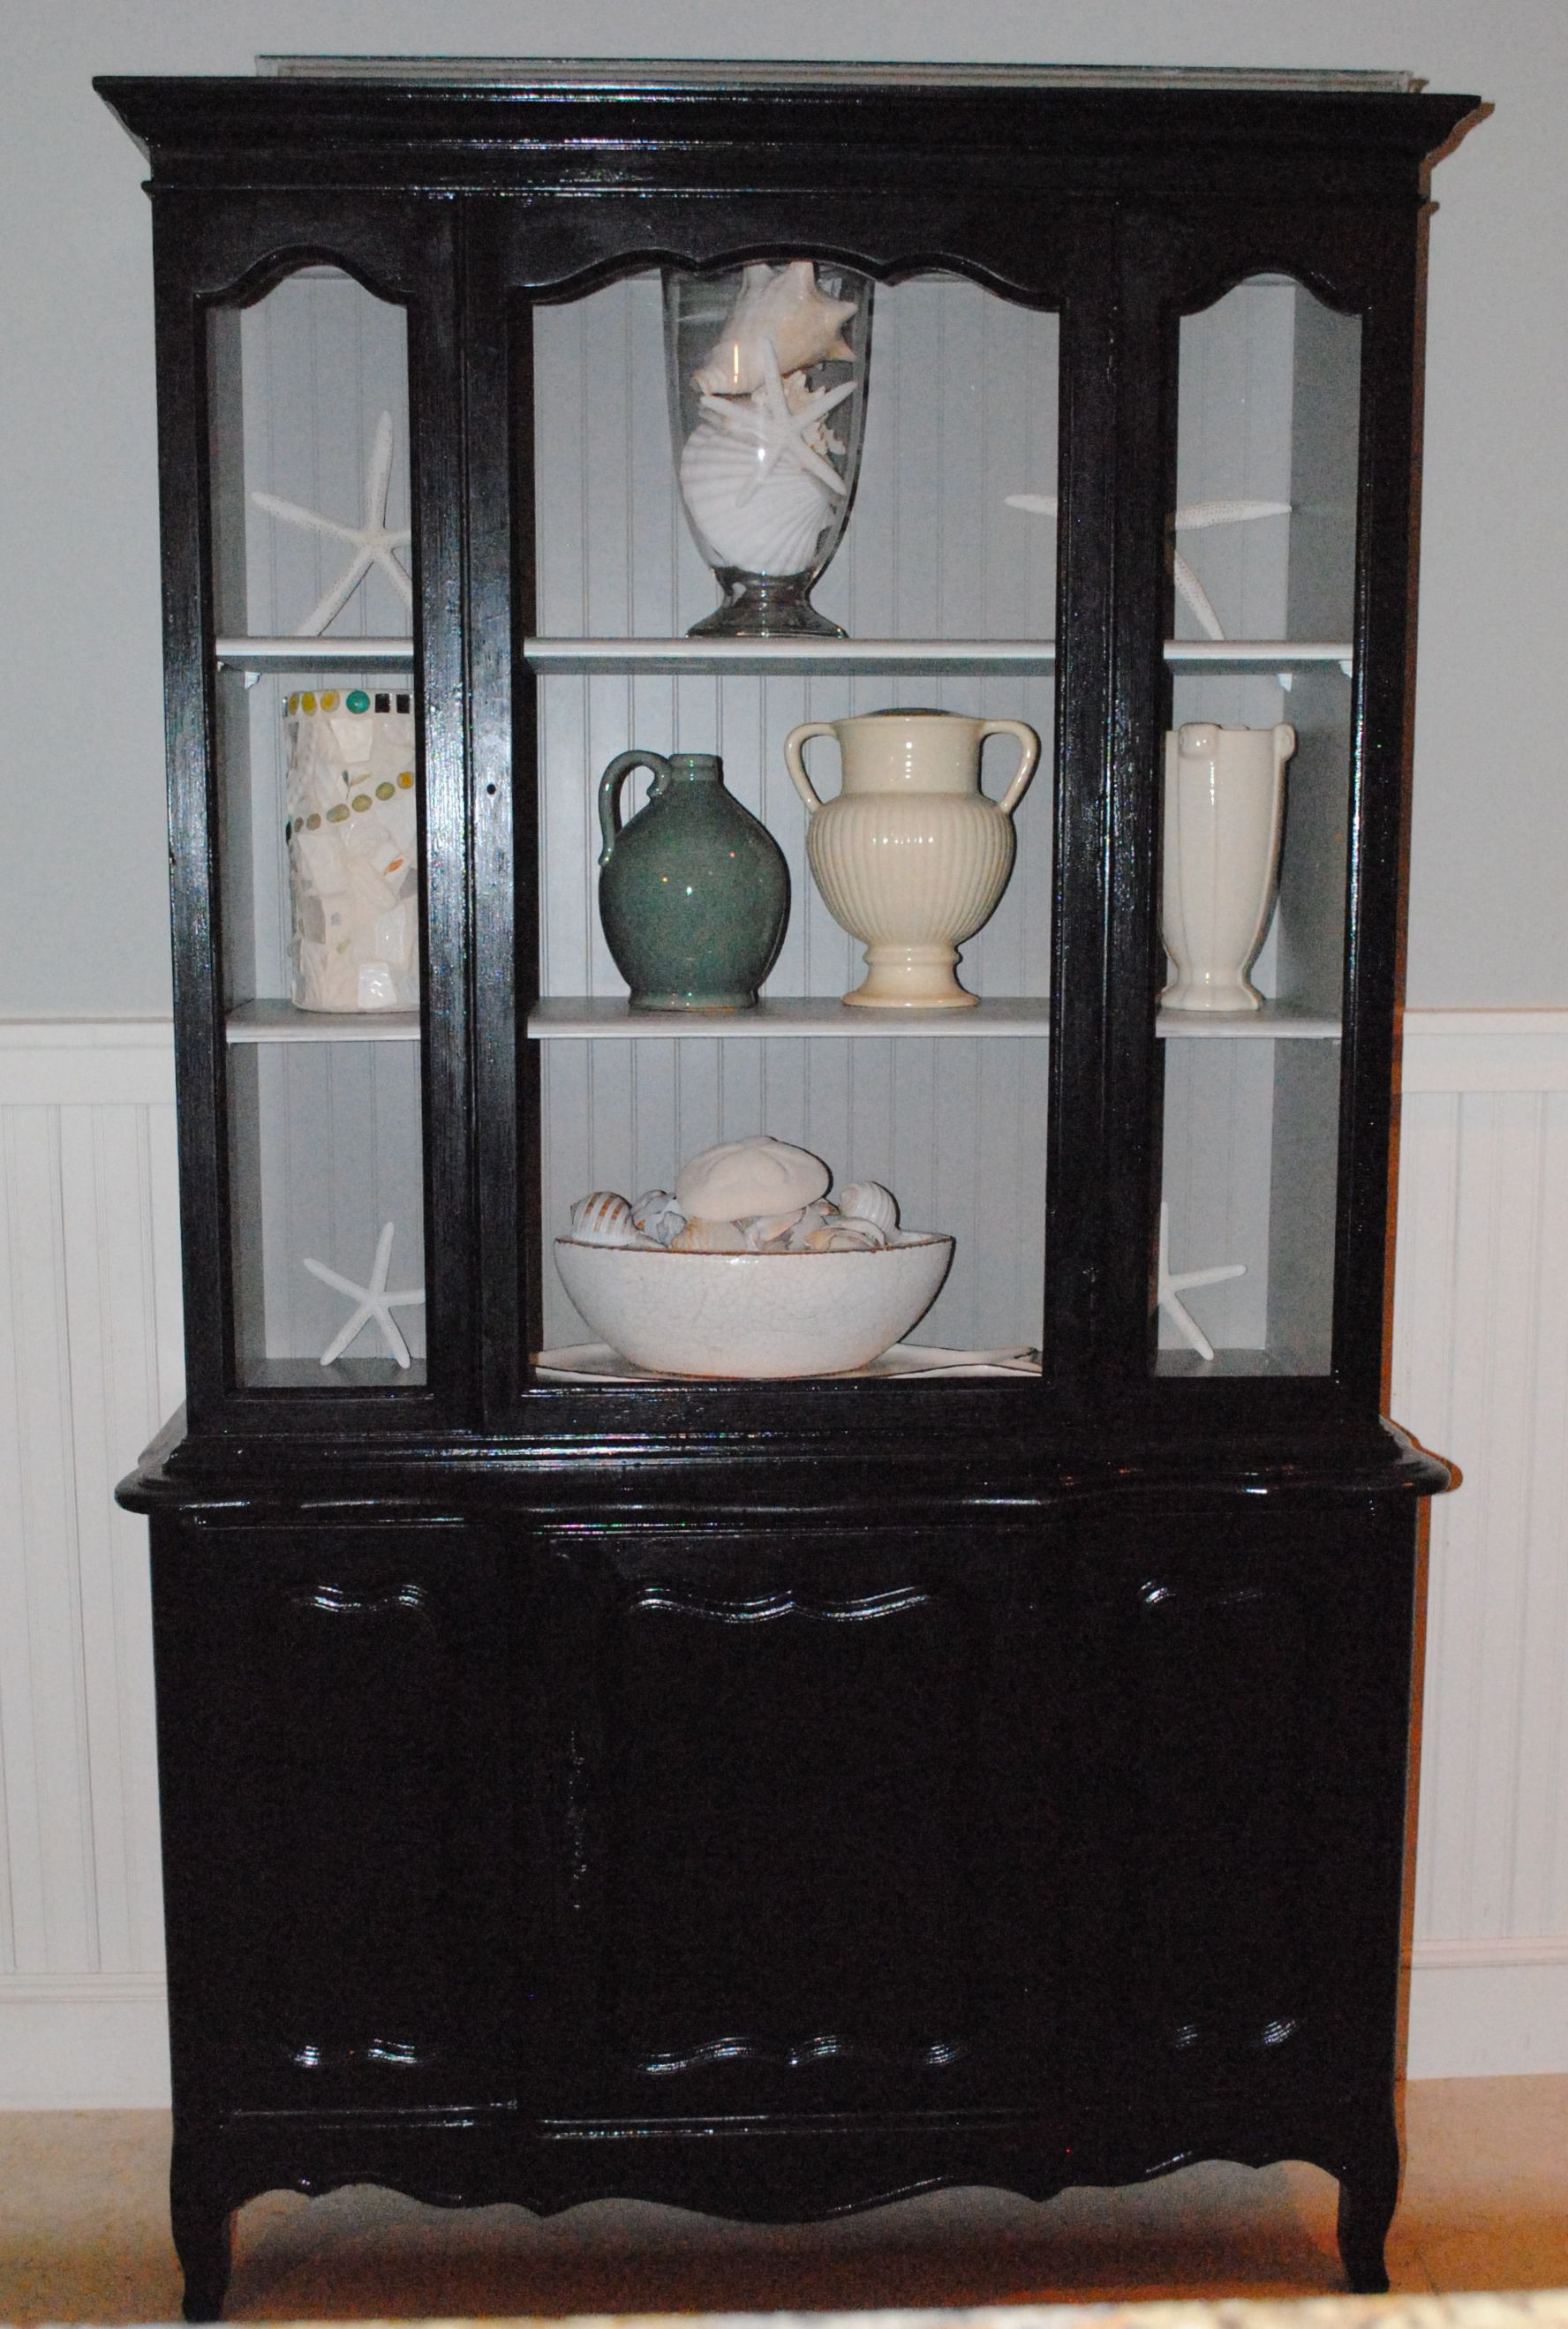 my old bathroom china cabinet painted black with taupe insides